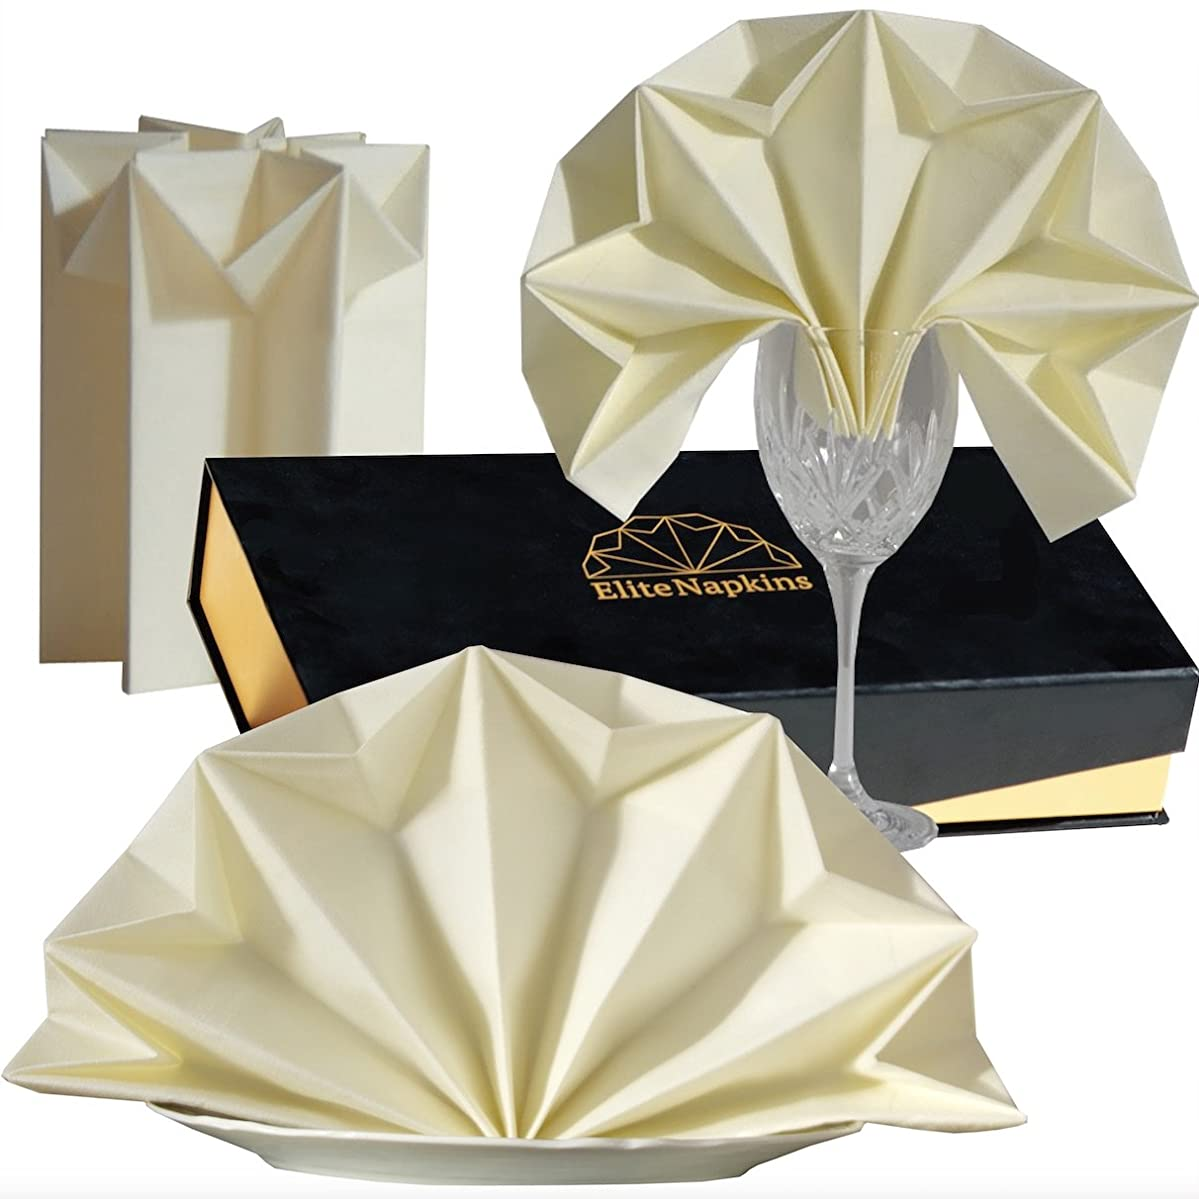 Dinner Napkins PRE FOLDED Decor Guest Towels For Kitchen Parties Weddings Dinners or Events Cloth Linen like Paper CHAMPAGNE beige color 10 Count